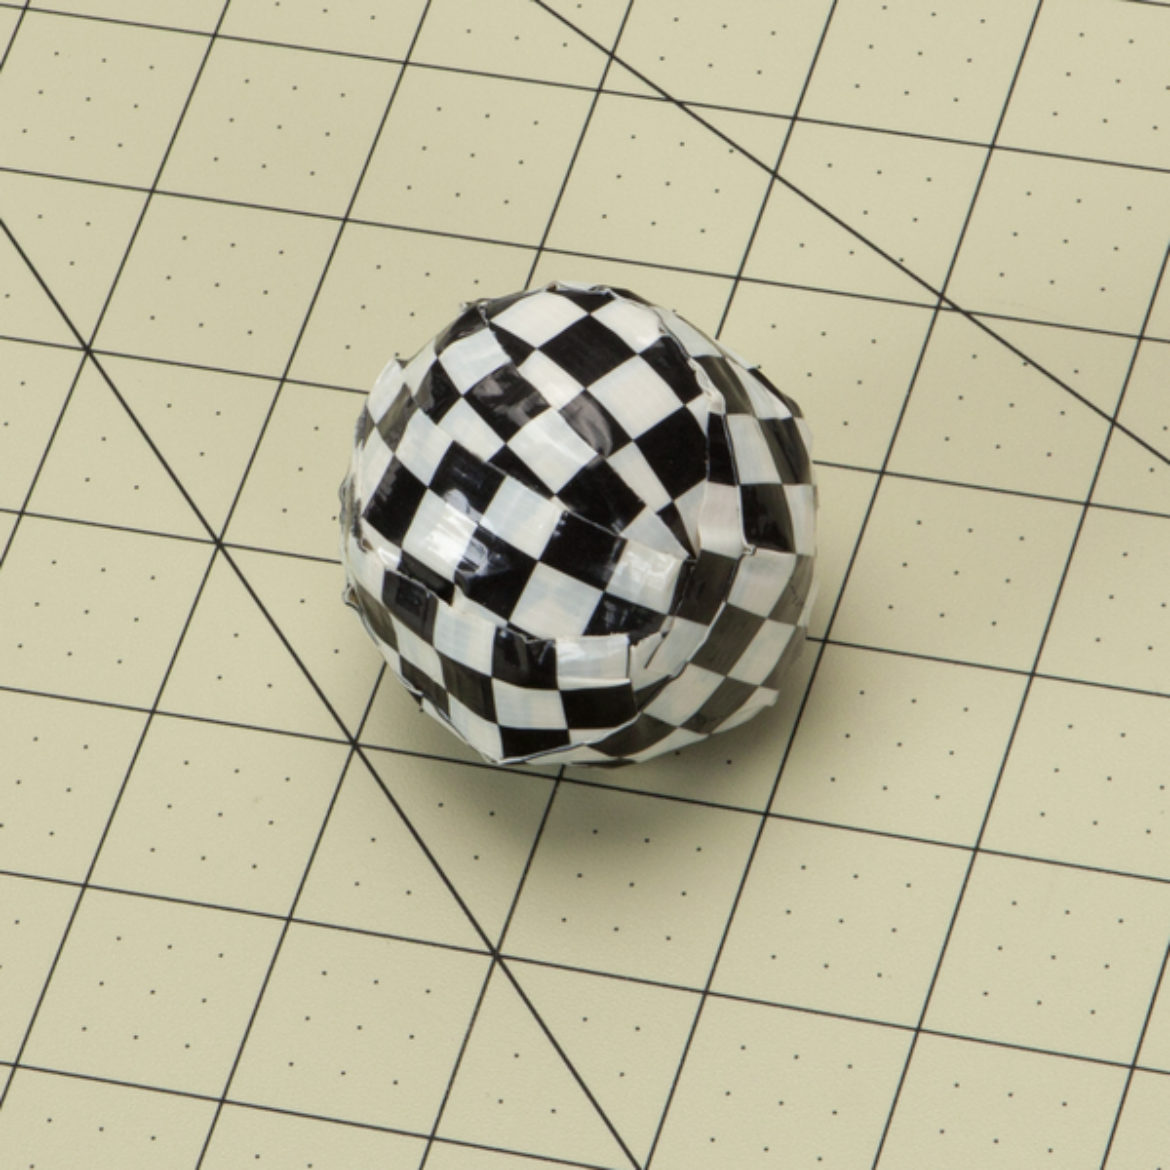 Ball made of Duck Tape